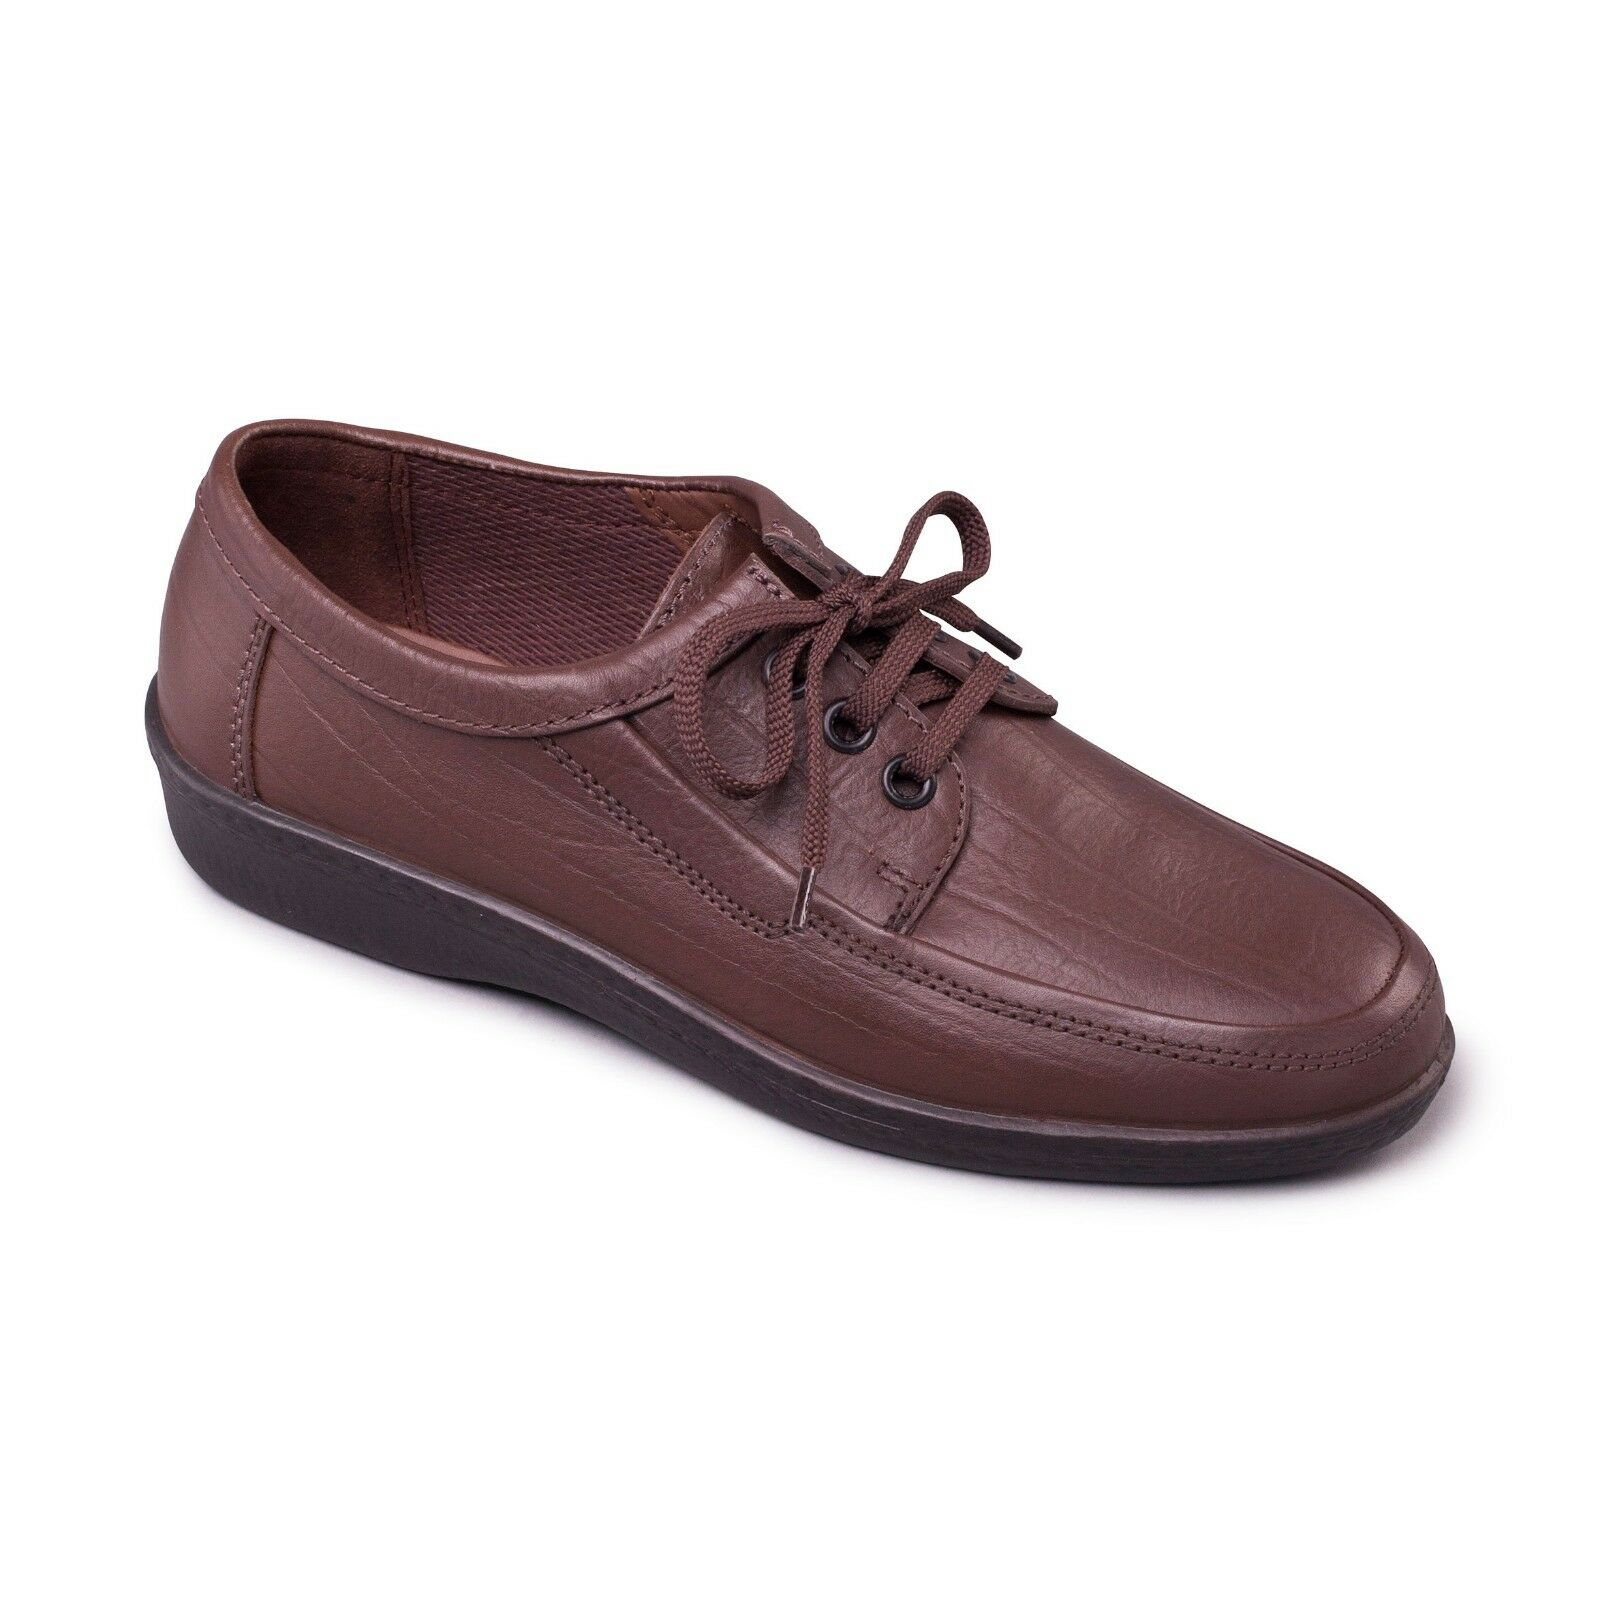 Padders Rebel Mens Soft Leather 3 Eyelet Lace-Up Tie Shoe  Comfort Casual  Brown